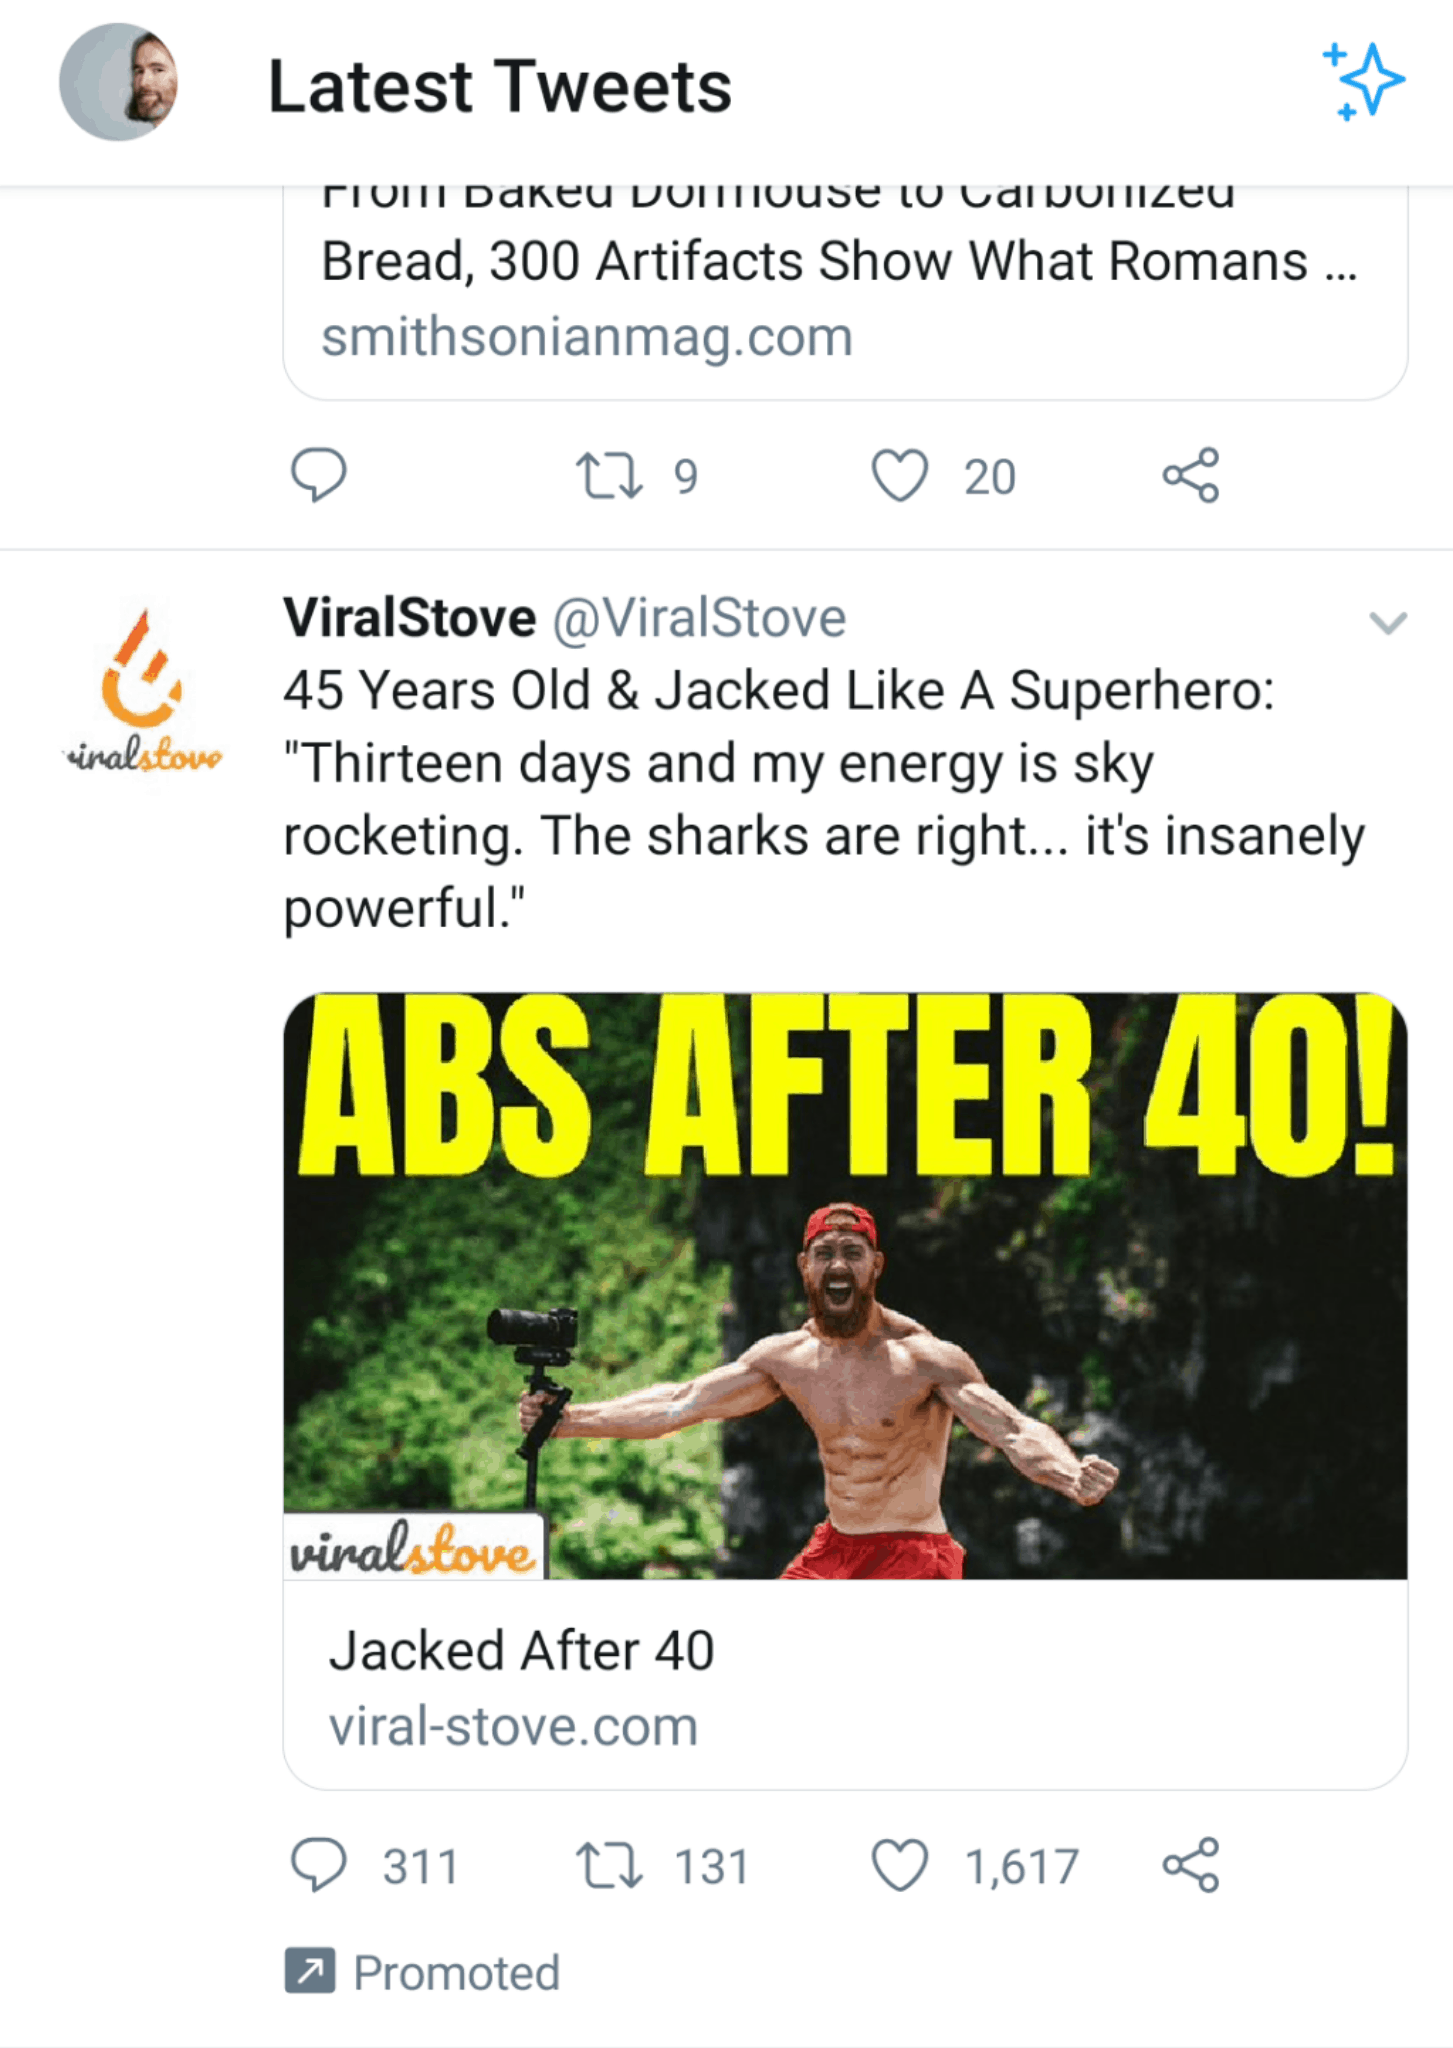 An advert on Twitter from ViralStove that claims to provide Abs after 40! with a topless man holding a camera.